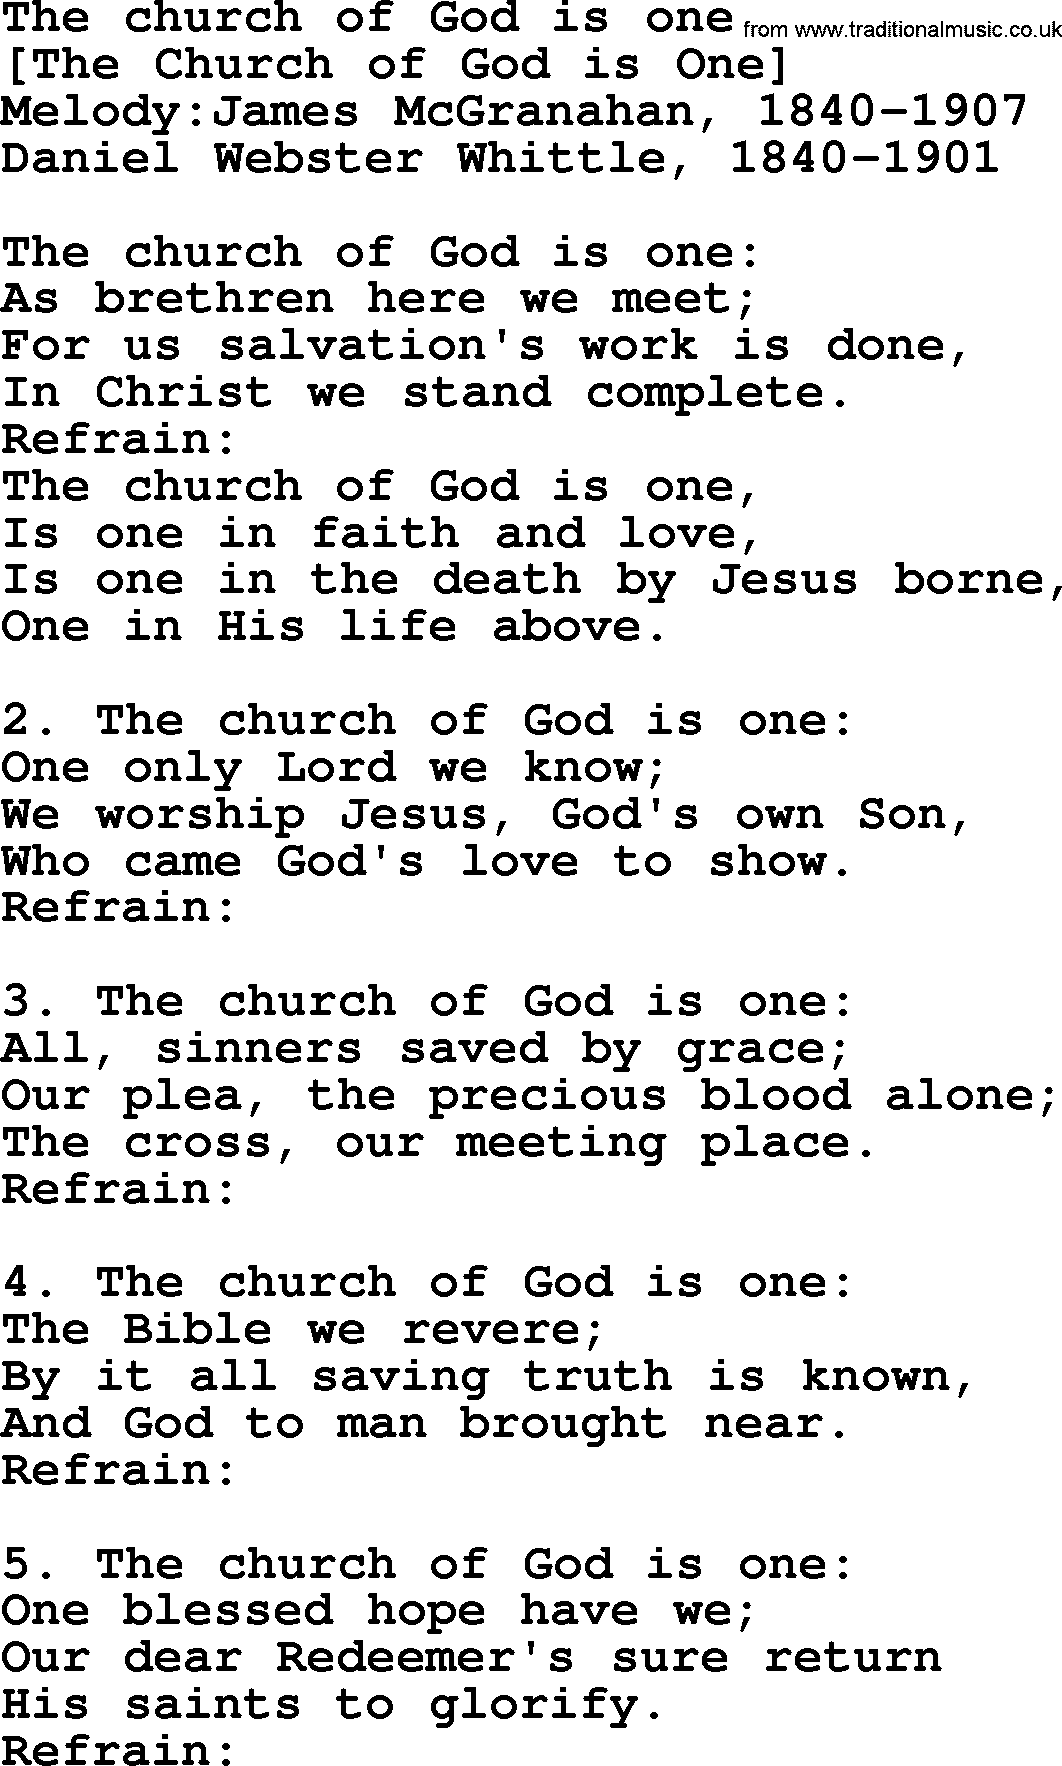 Old American Song - Lyrics for: The Church Of God Is One